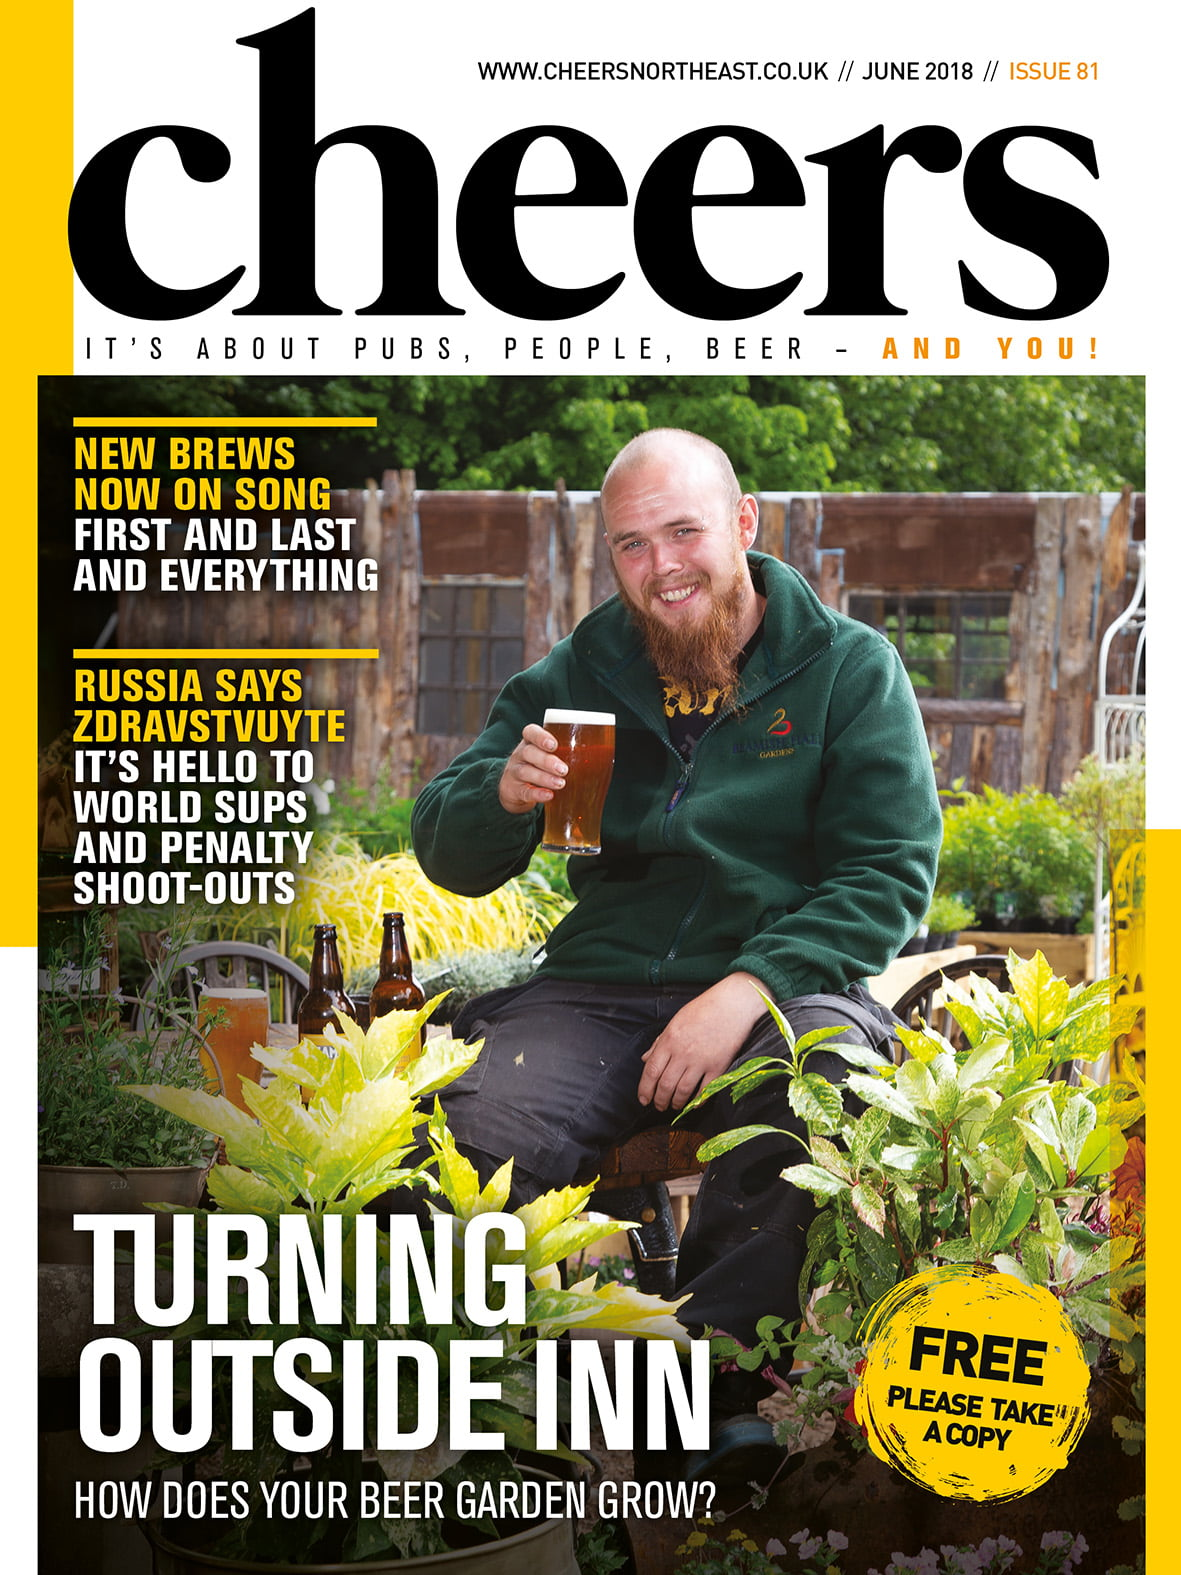 Cheers issue 81